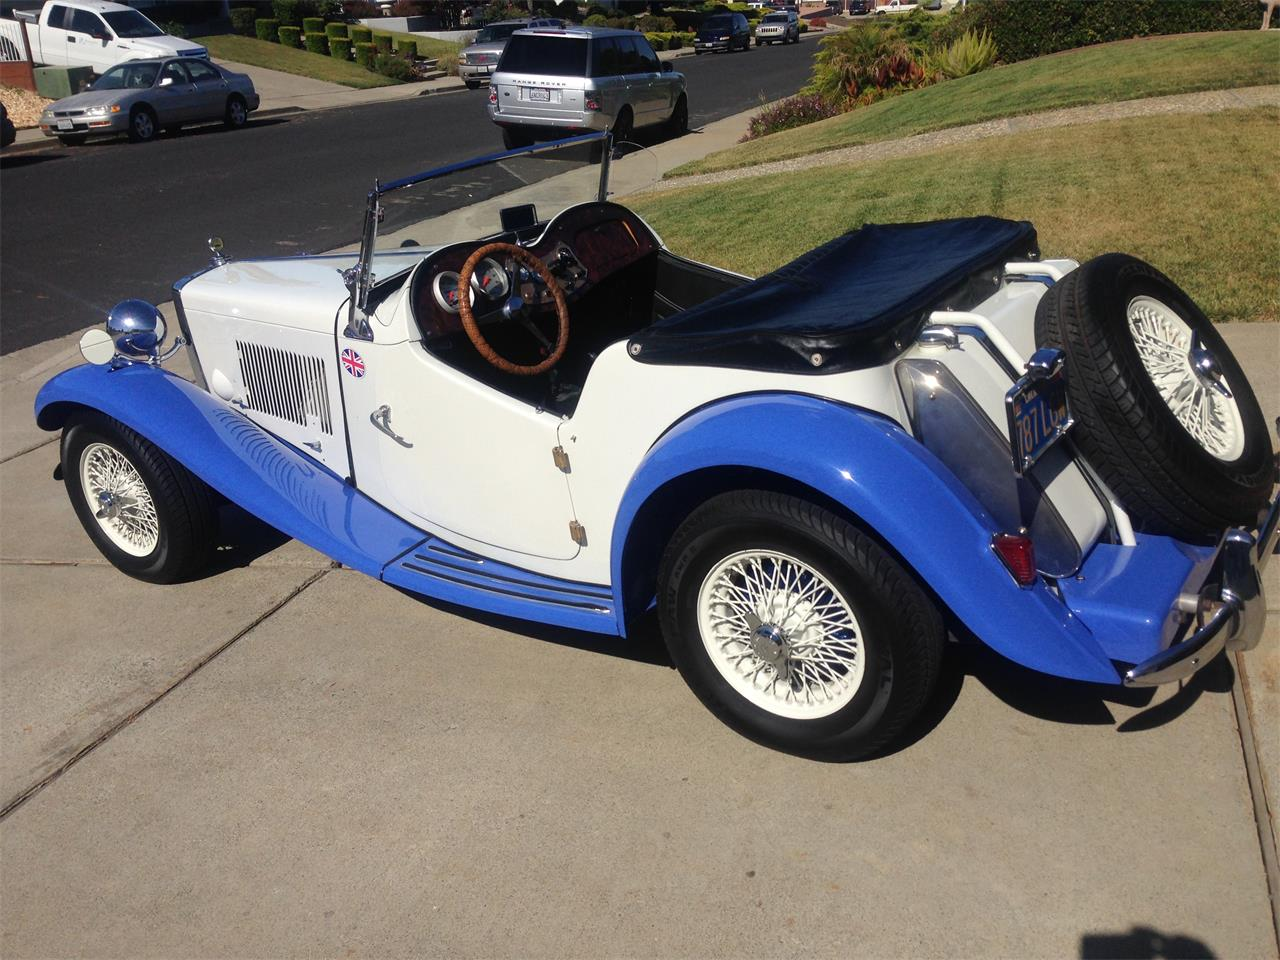 Large Picture of Classic '52 MG TD located in California - $18,888.00 - FTY3